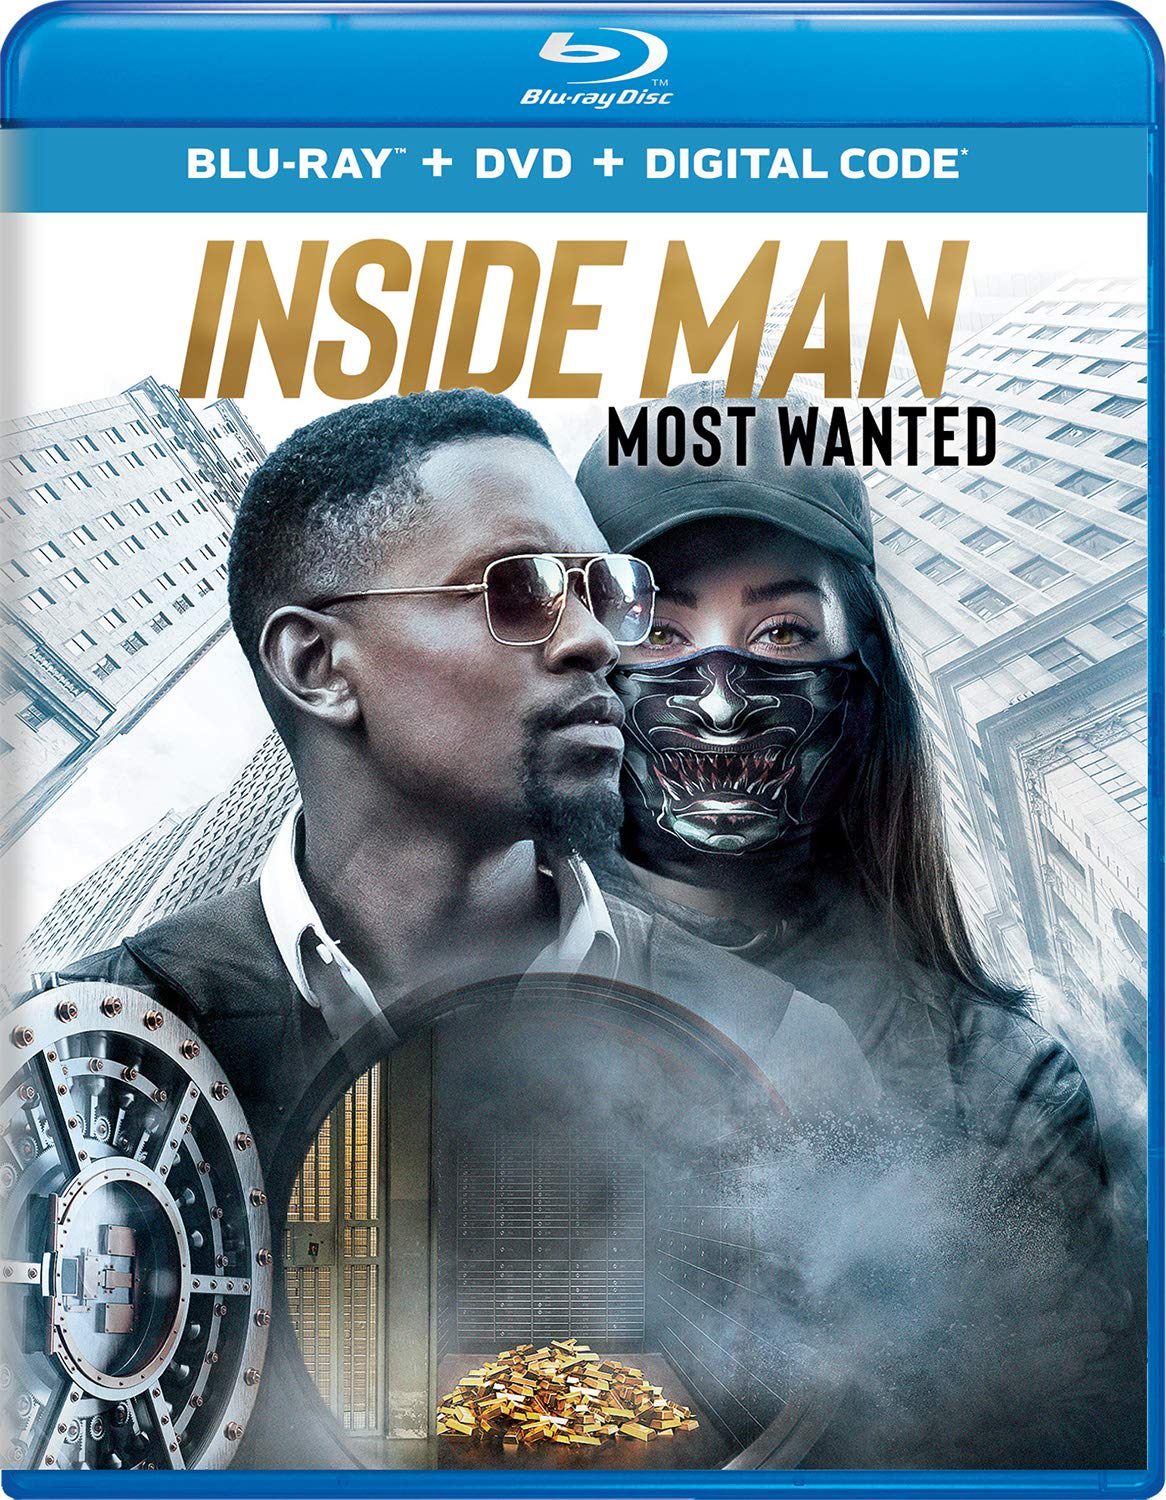 Inside Man: Most Wanted (DVD + Digital) [Blu-ray]